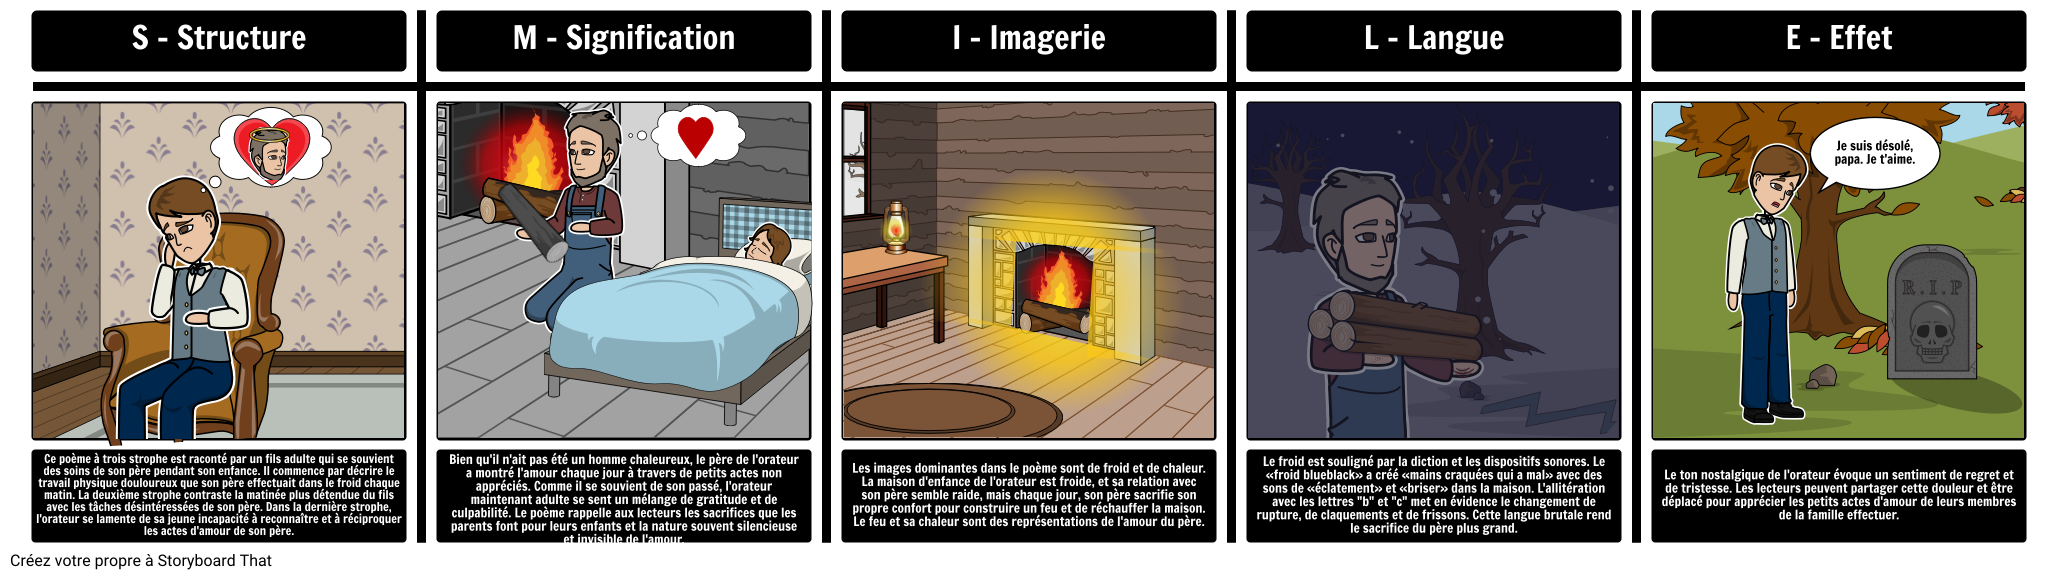 Ces Dimanches Dhiver Smile Storyboard By Fr Examples